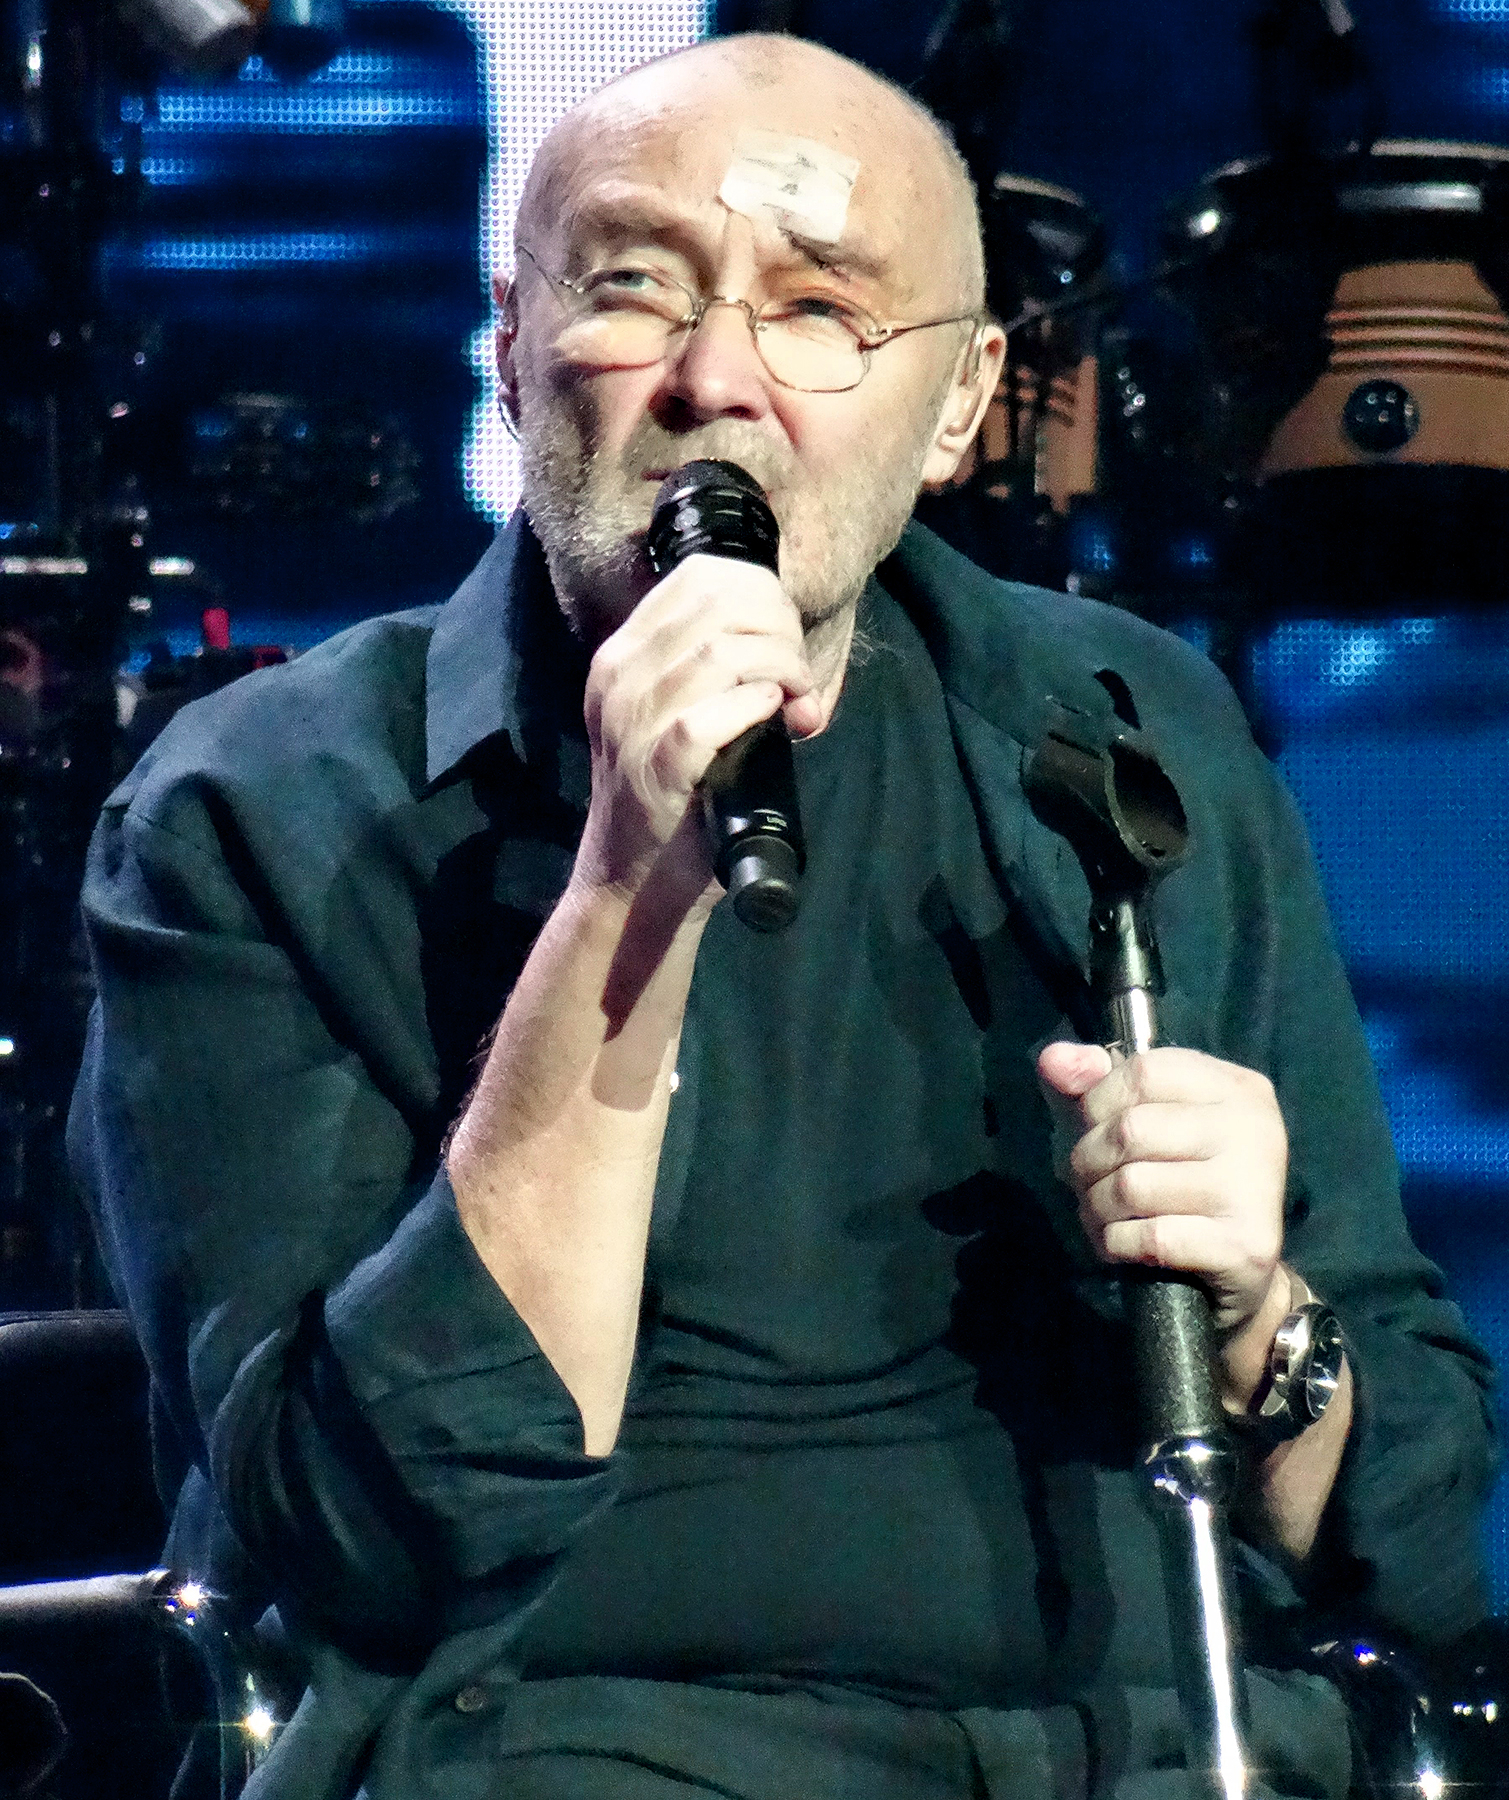 Phil Collins In Concert At Lans Arena Cologne Germany On June 11 2017